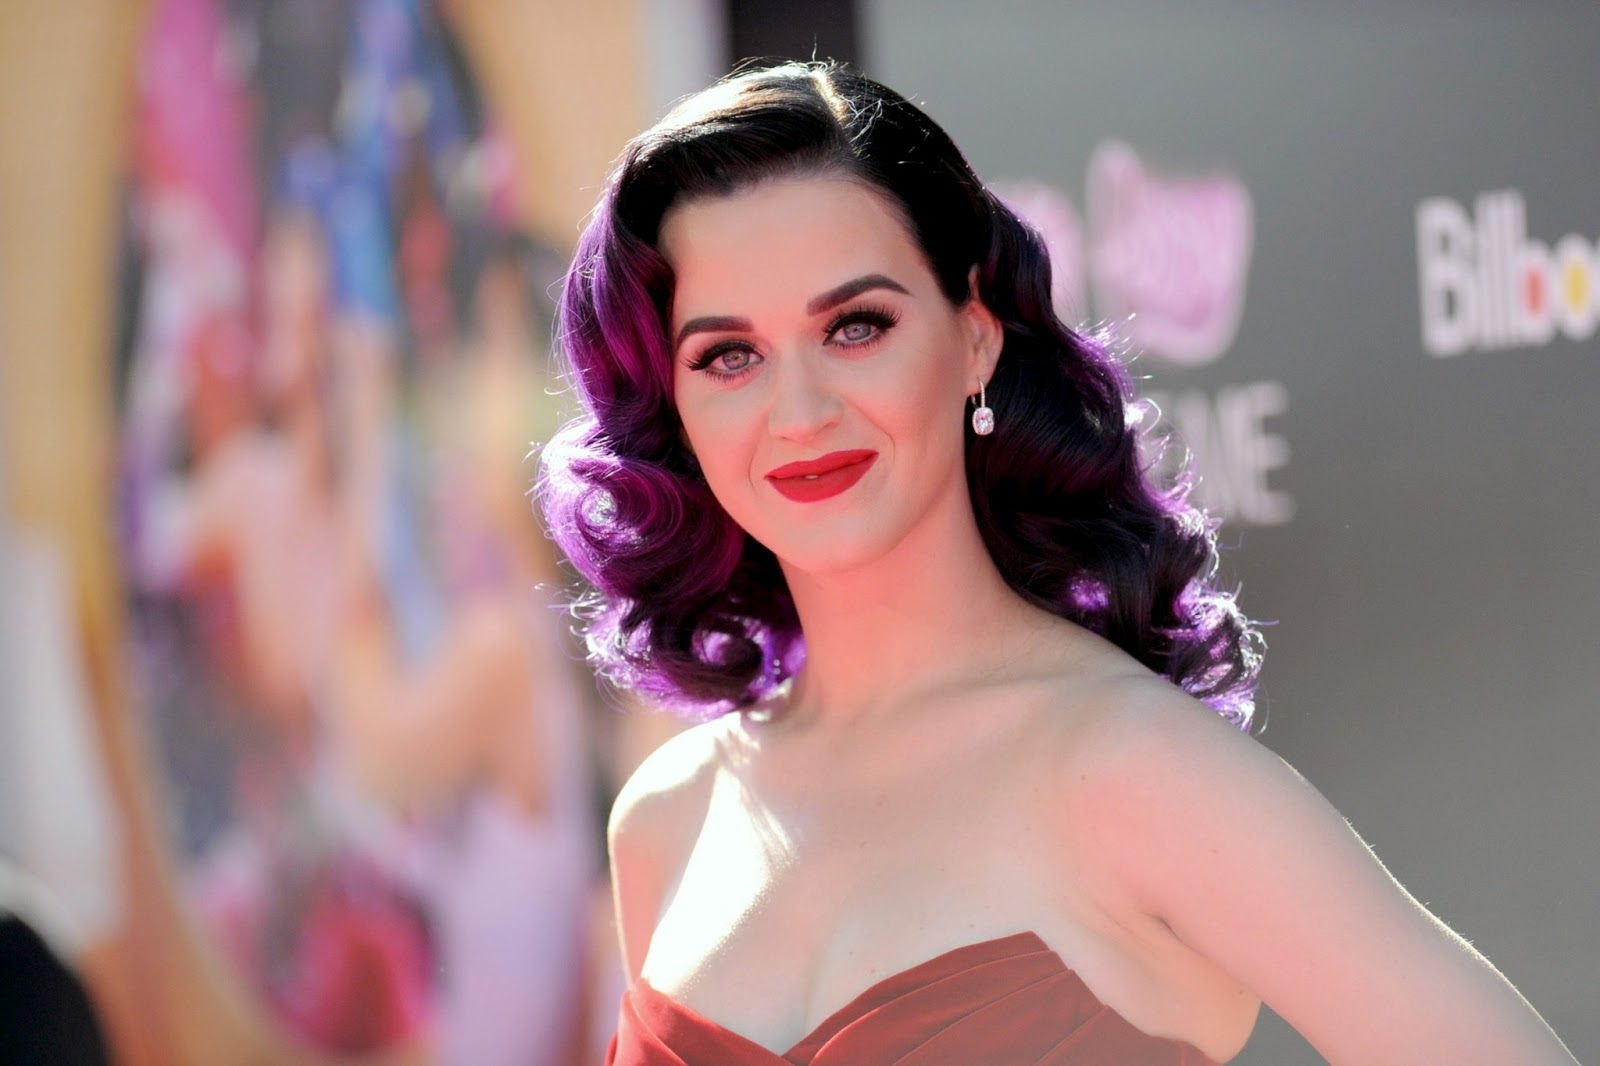 Katy perry concret wallpaper